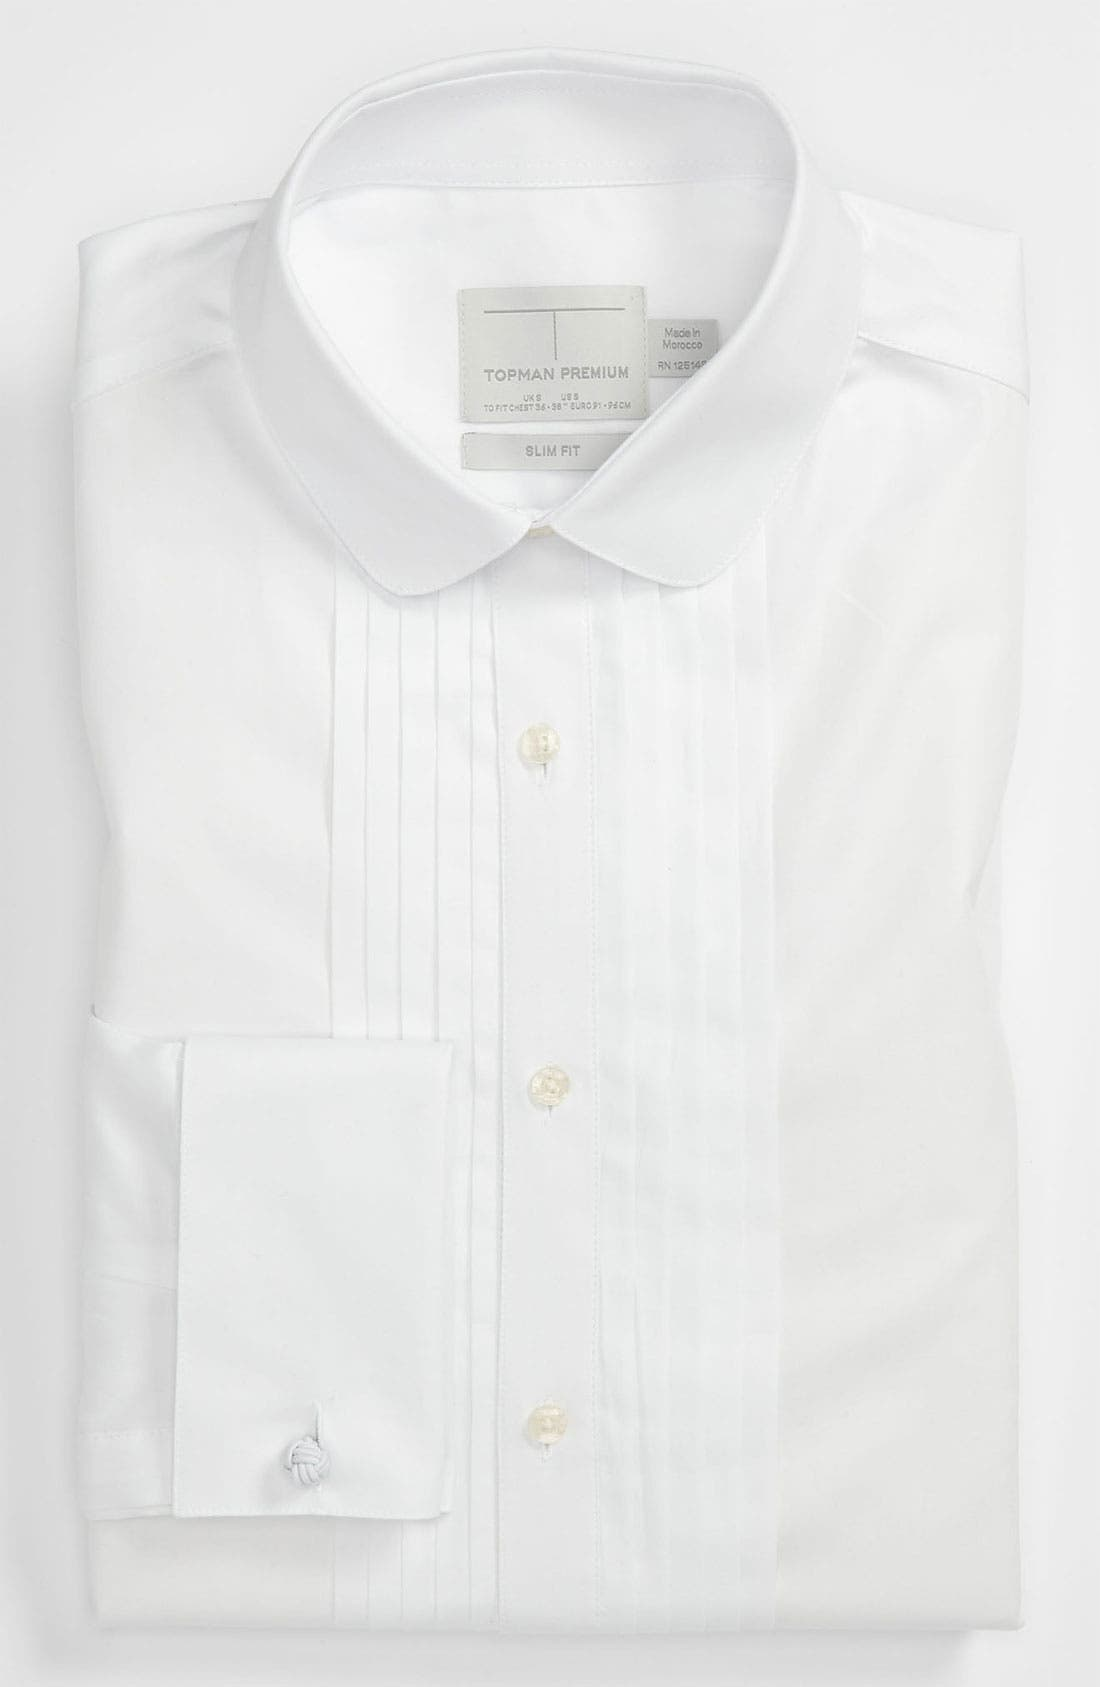 Alternate Image 1 Selected - Topman 'Premium' Slim Fit Dress Shirt